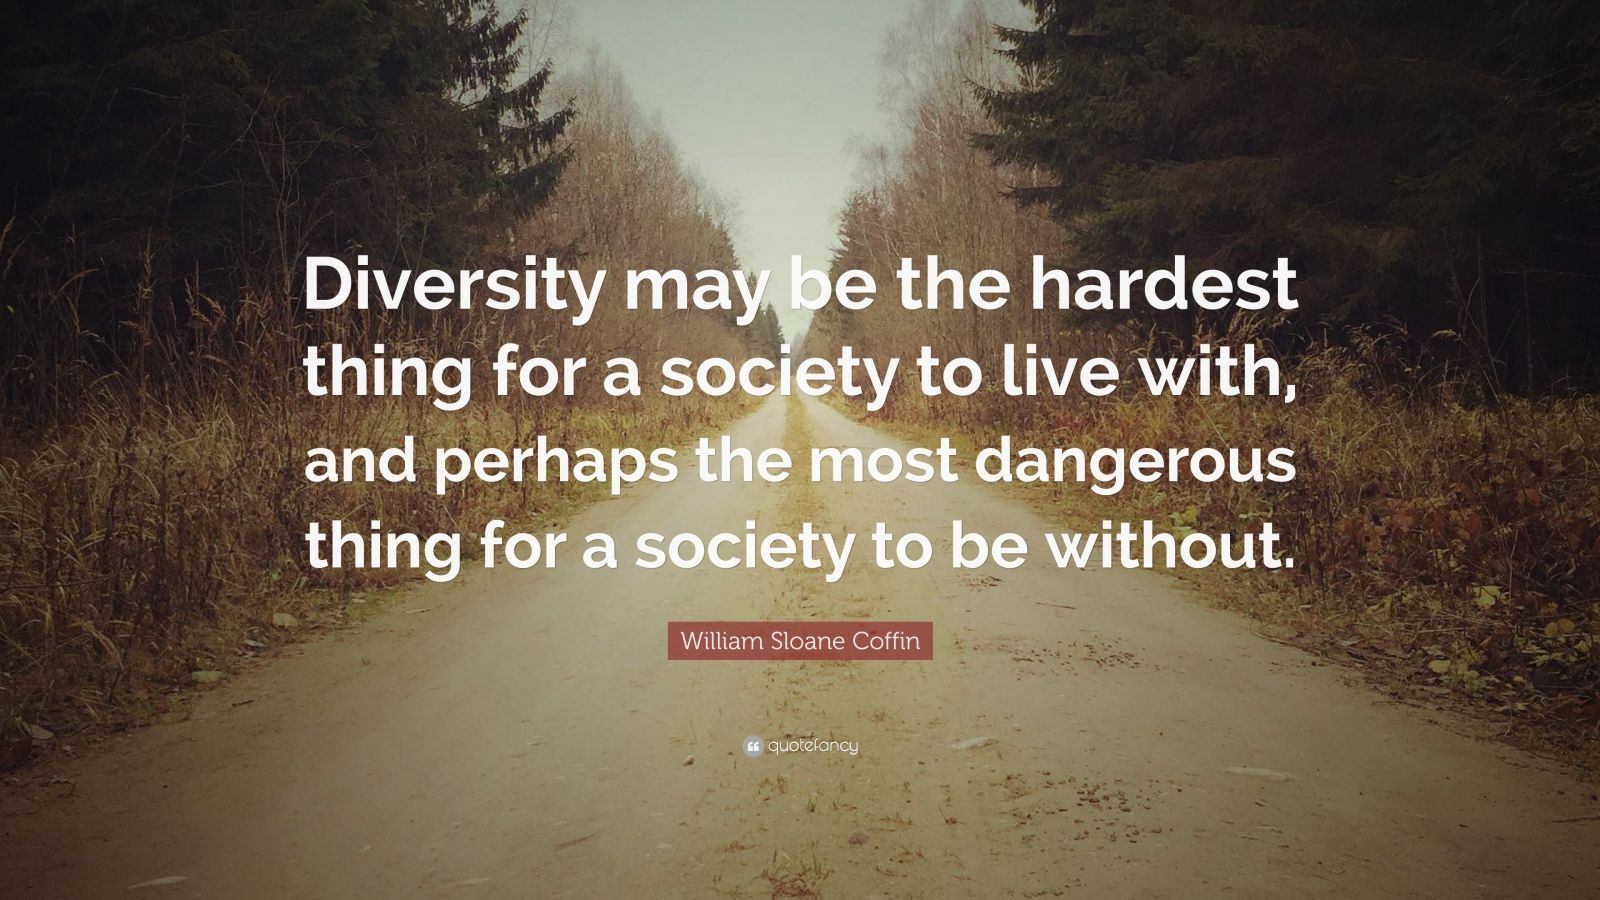 "William Sloane Coffin, Jr. Quote: ""Diversity may be the hardest thing for a society to live with, and perhaps the most dangerous thing for a society to be without."""